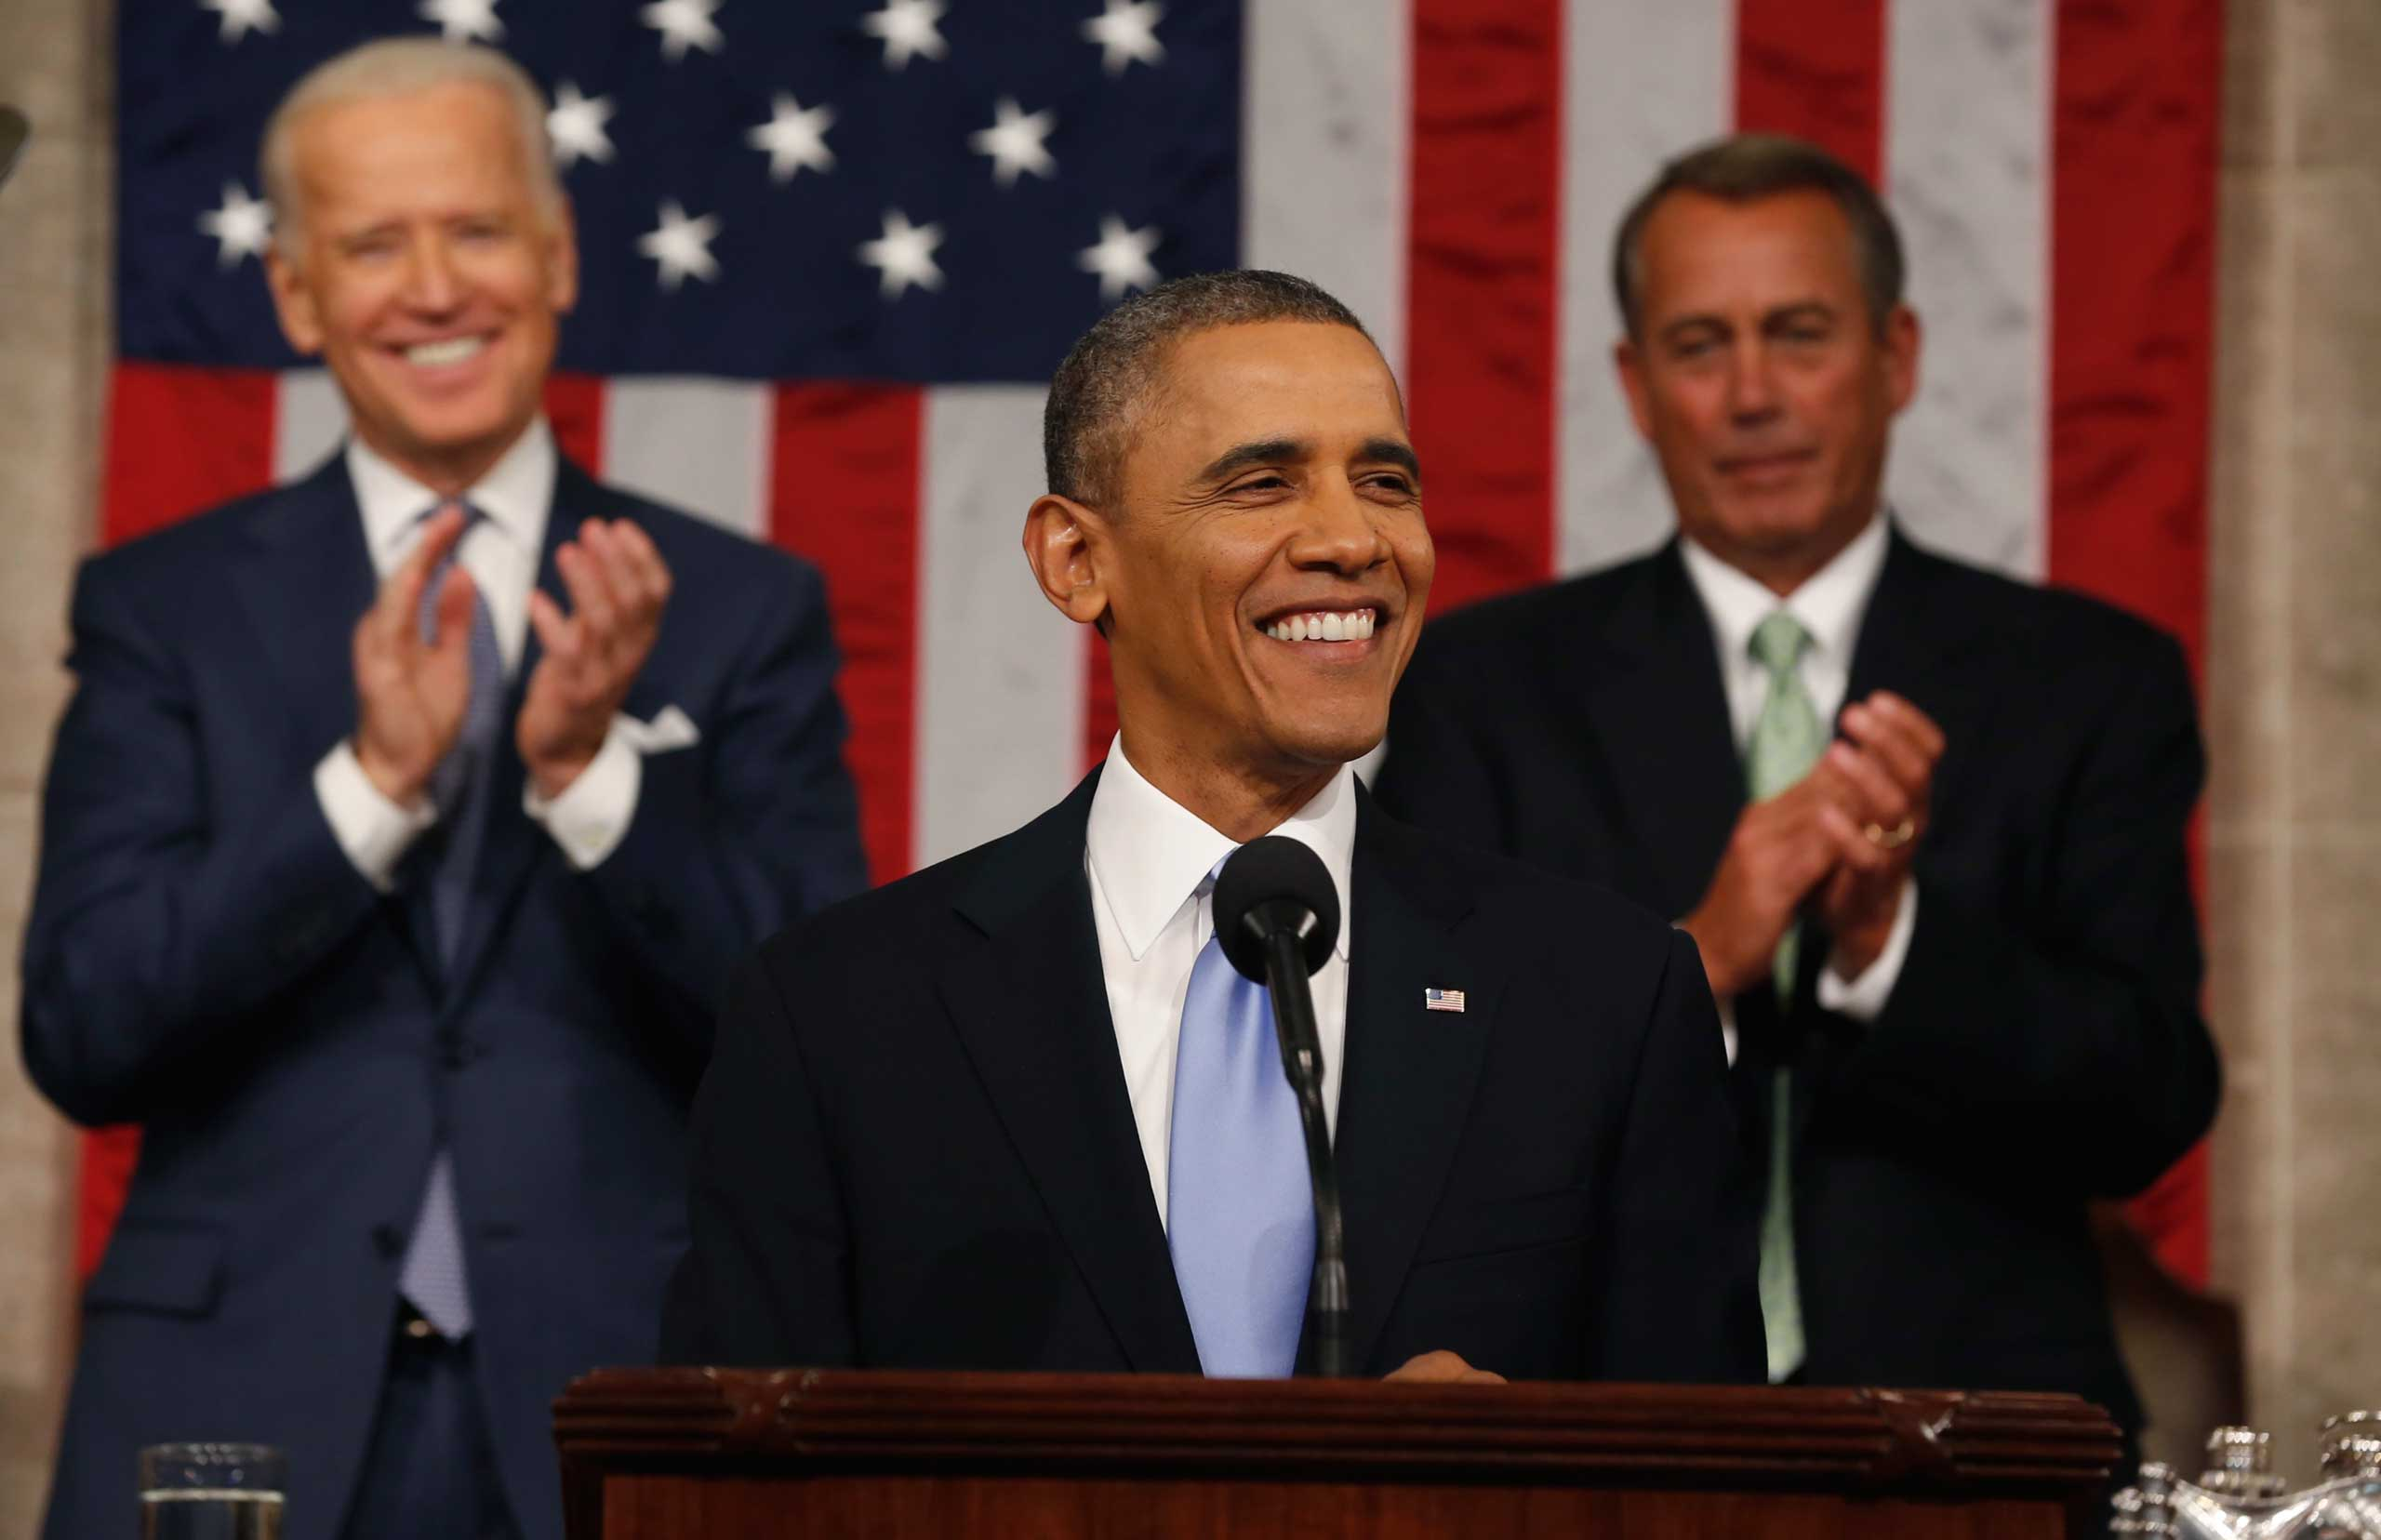 President Obama Delivers State Of The Union Address At U.S. Capitol in 2014.